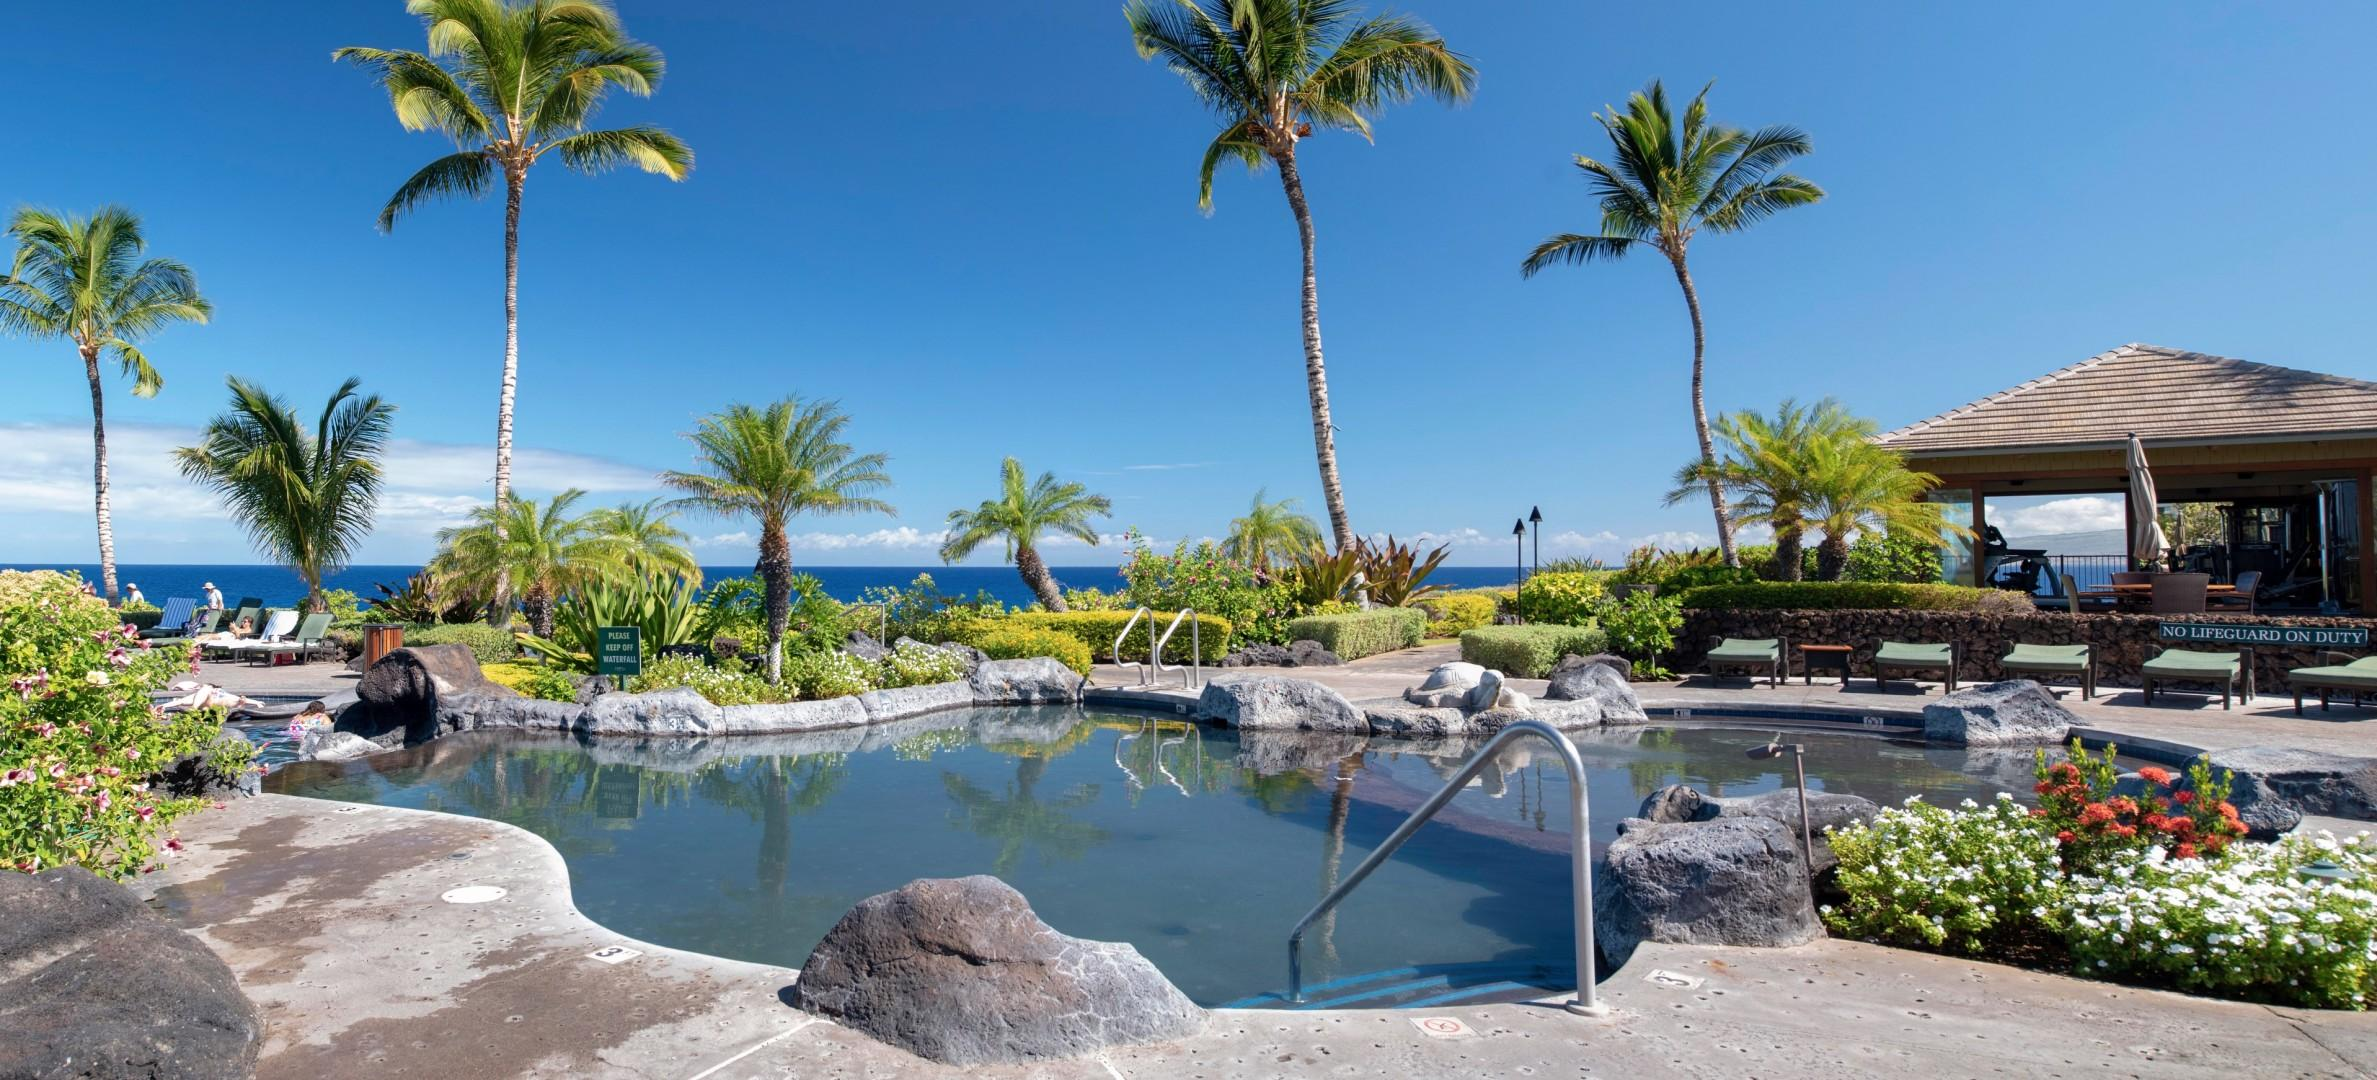 Hali'i Kai Resort's private swimming pool w/ multi levels and depths (fitness center in background)